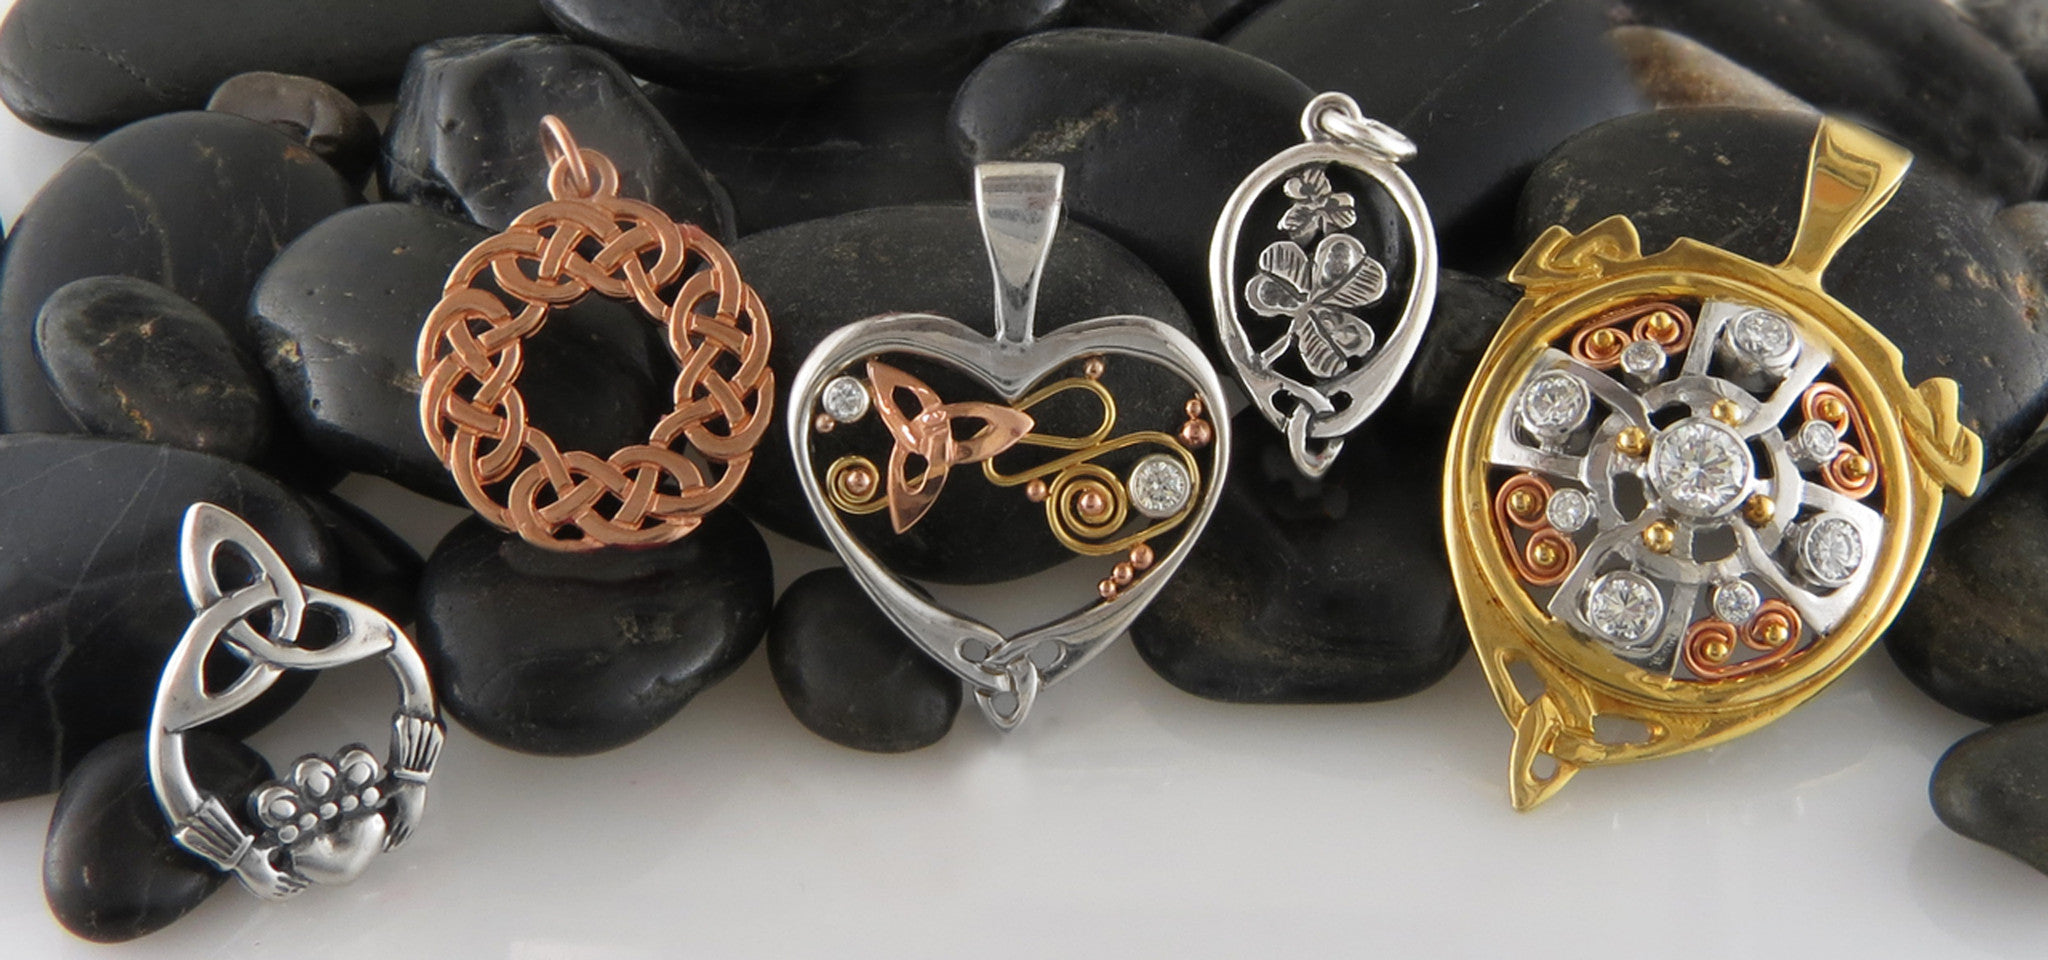 Celtic pendants in 14k gold and sterling silver tagged silver handcrafted celtic pendants and necklaces in sterling silver and gold are a fashionable statement of your heritage and faith our jewelry designers draw on mozeypictures